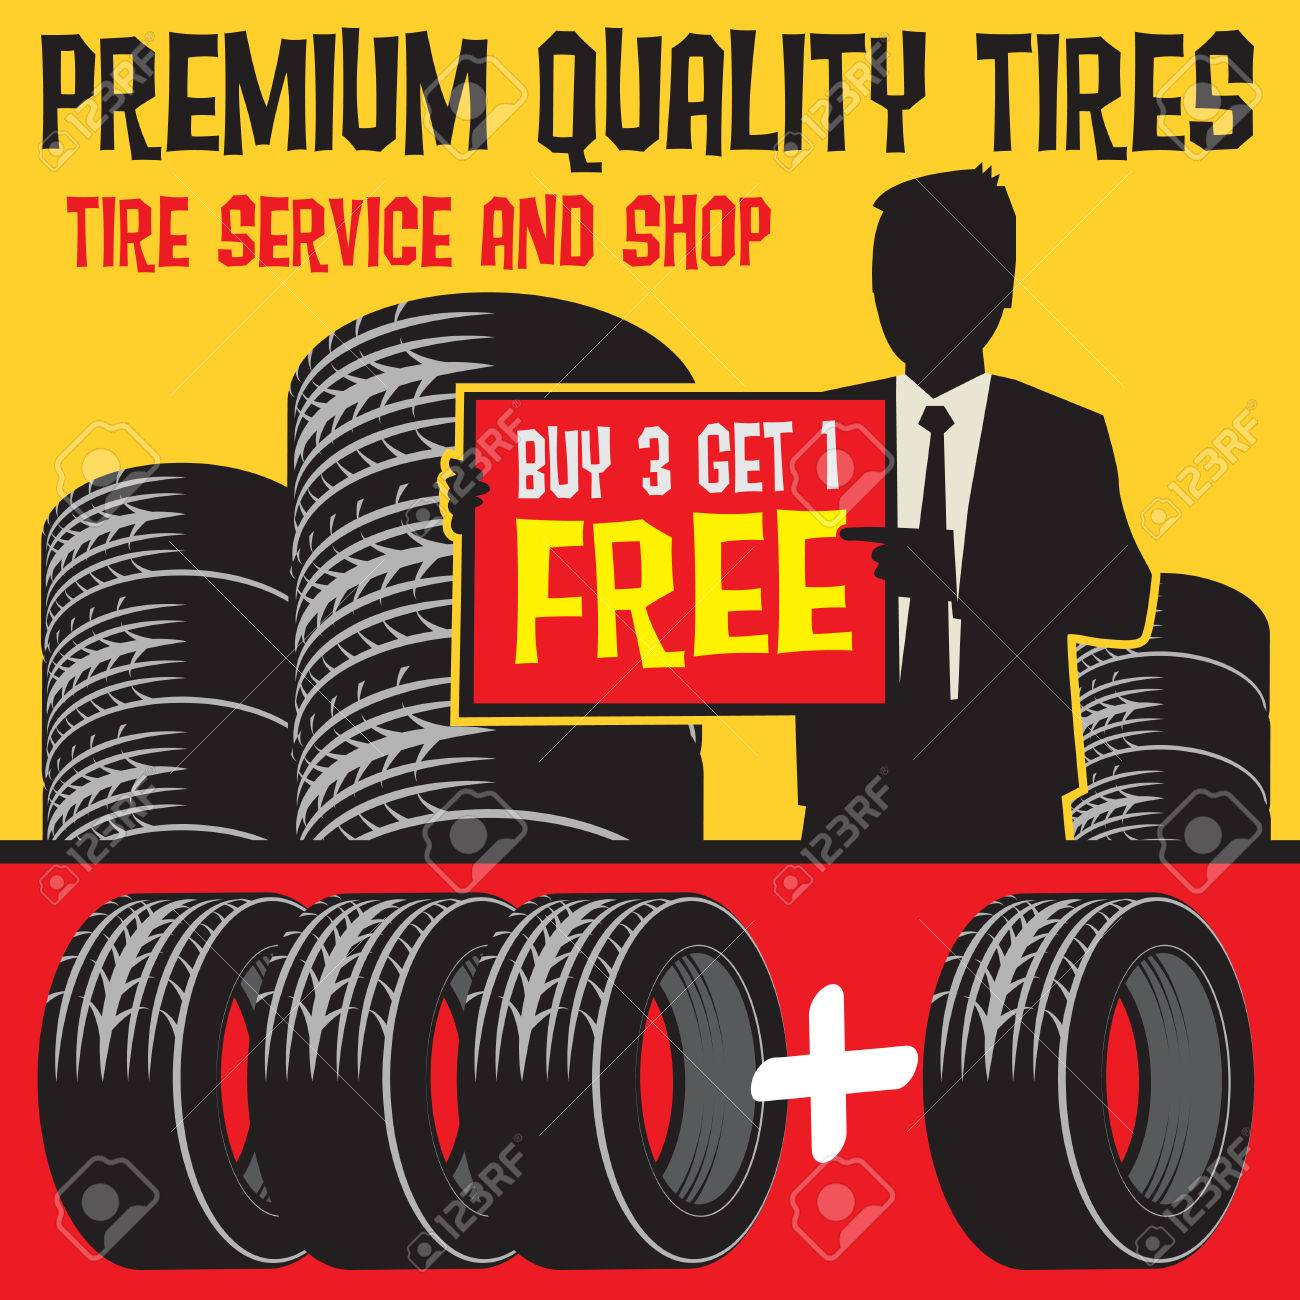 Buy 3 Get 1 Free Tires >> Vintage Tire Service Or Garage Poster With Text Tire Shop And